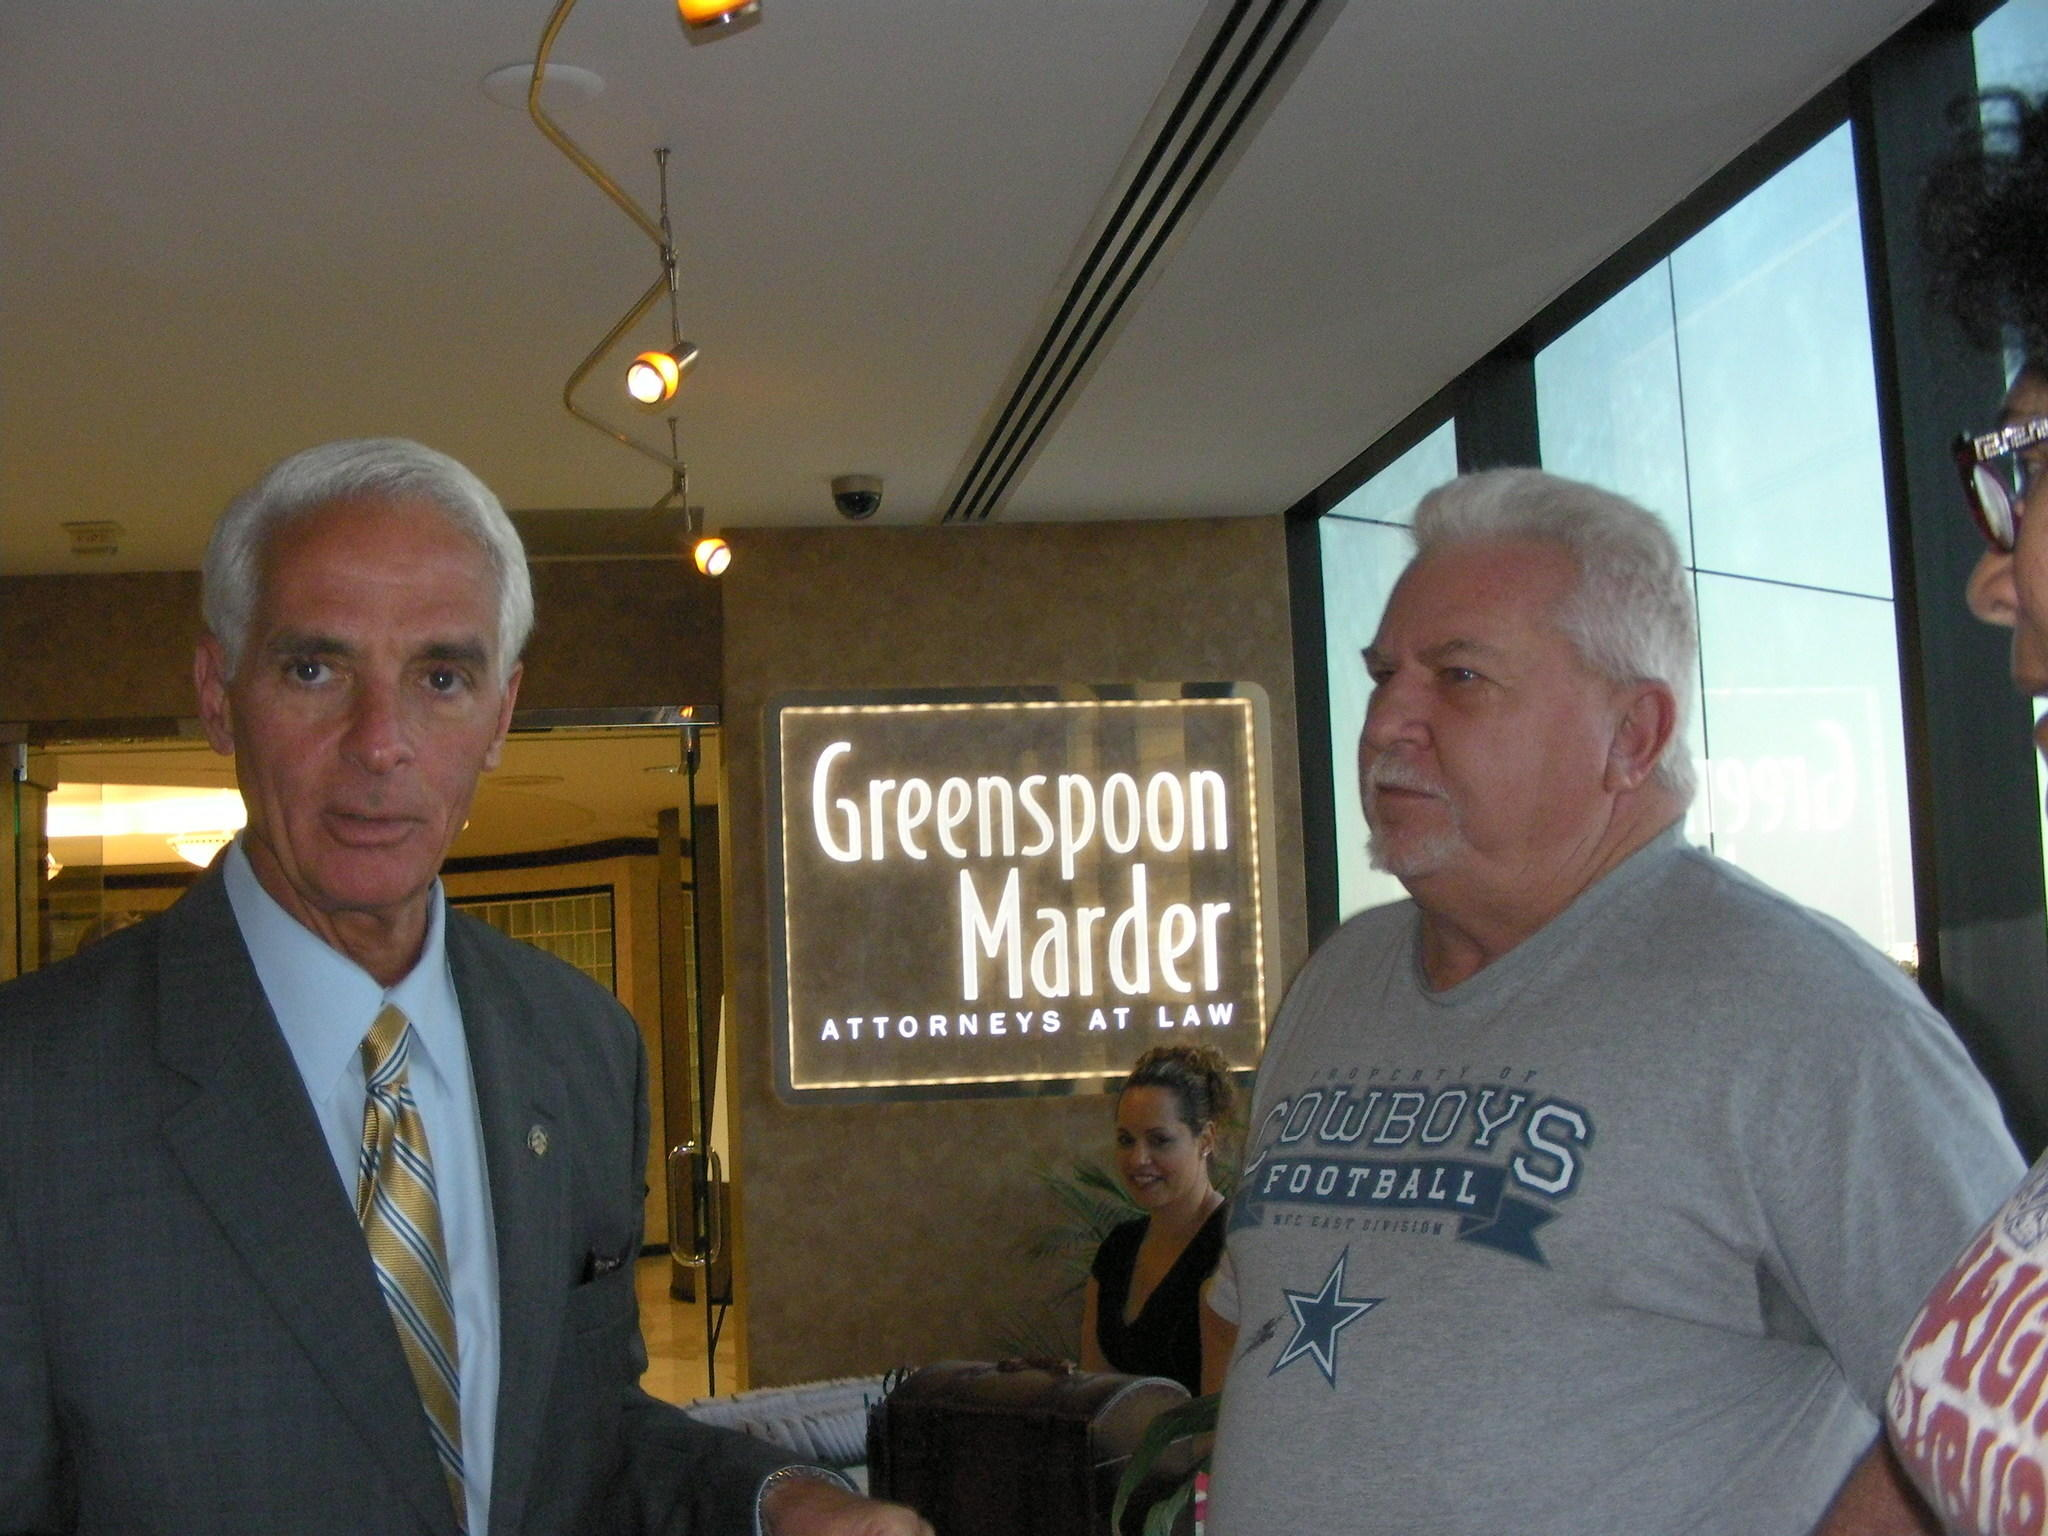 Former Gov. Charlie Crist with Dan Reynolds, 61, a Hollywood resident and North Miami Beach police officer, who was at the Greenspoon Marder law firm on Tuesday. Reynolds, a Republican, said it was really a treat to meet Crist in the lobby of the law firm and wants to see back as governor. He did such a great job when he was in. I think hes for the people. (Photo by Anthony Man)